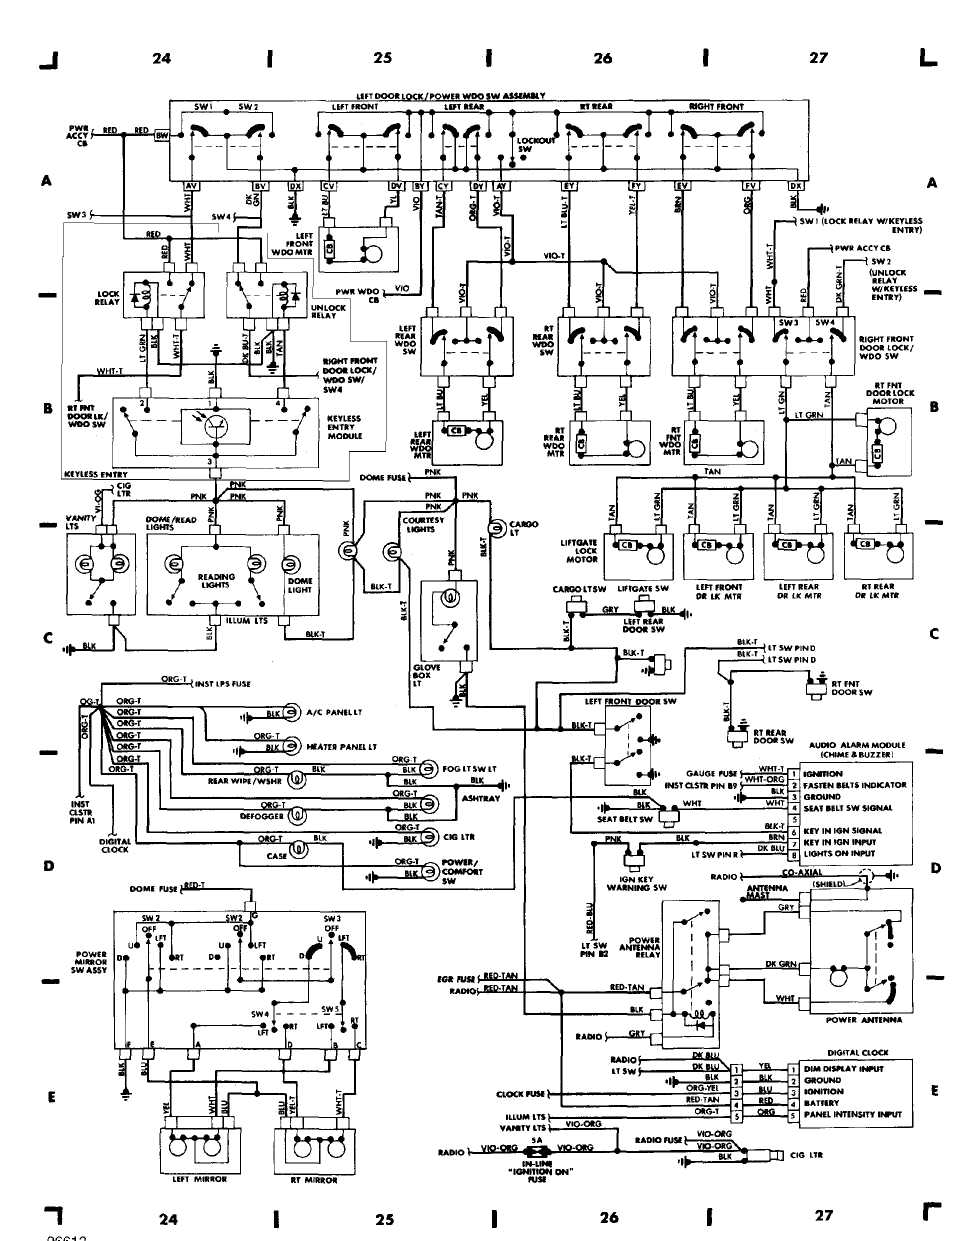 Wiring Diagram For 1988 Jeep Comanche 4 Cylinder ~ Wiring